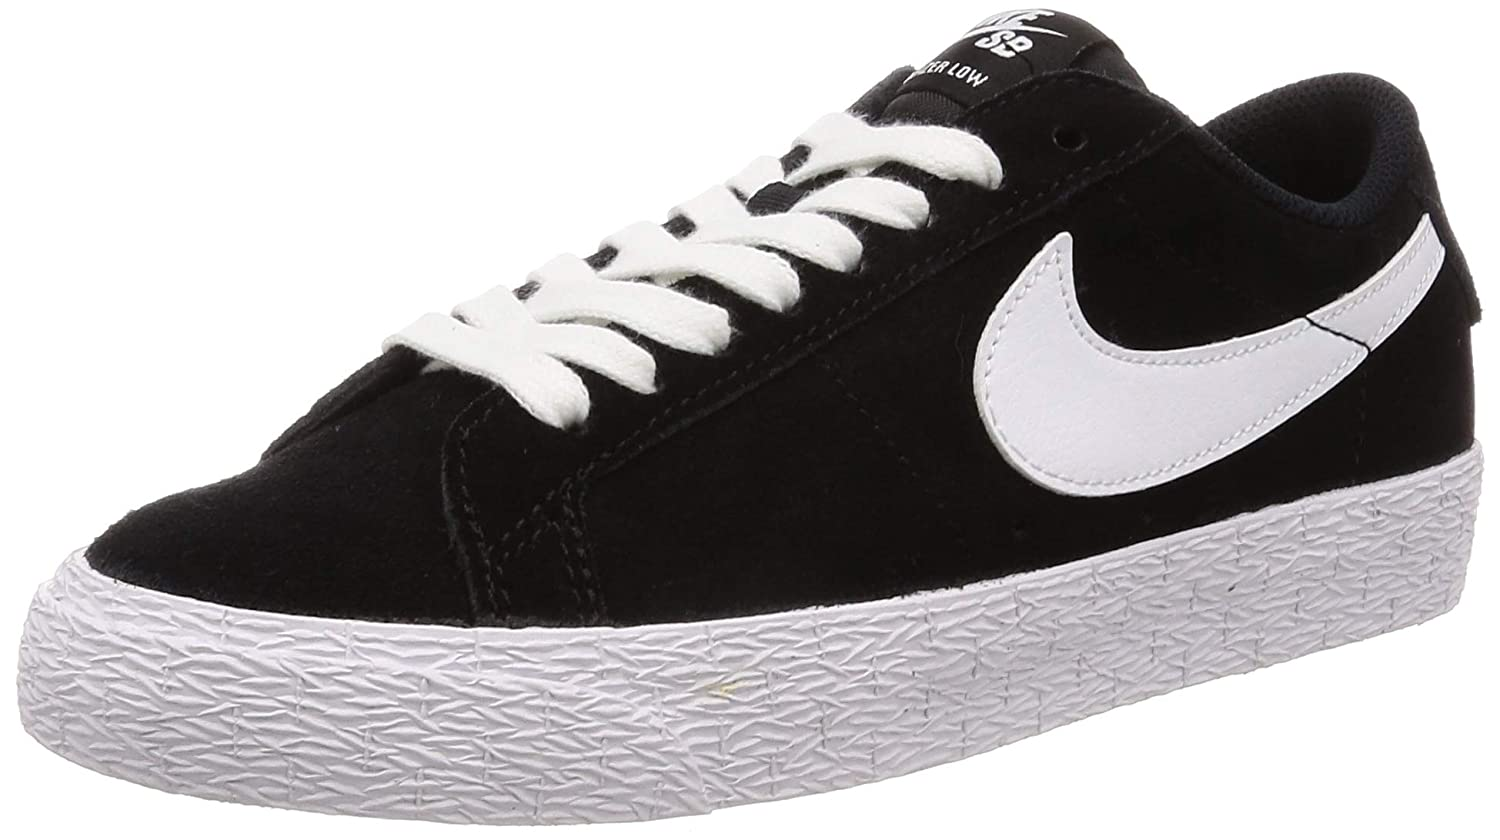 low priced 147ba 87c18 Nike SB Blazer Zoom Low - 864347-019: Amazon.ca: Shoes ...